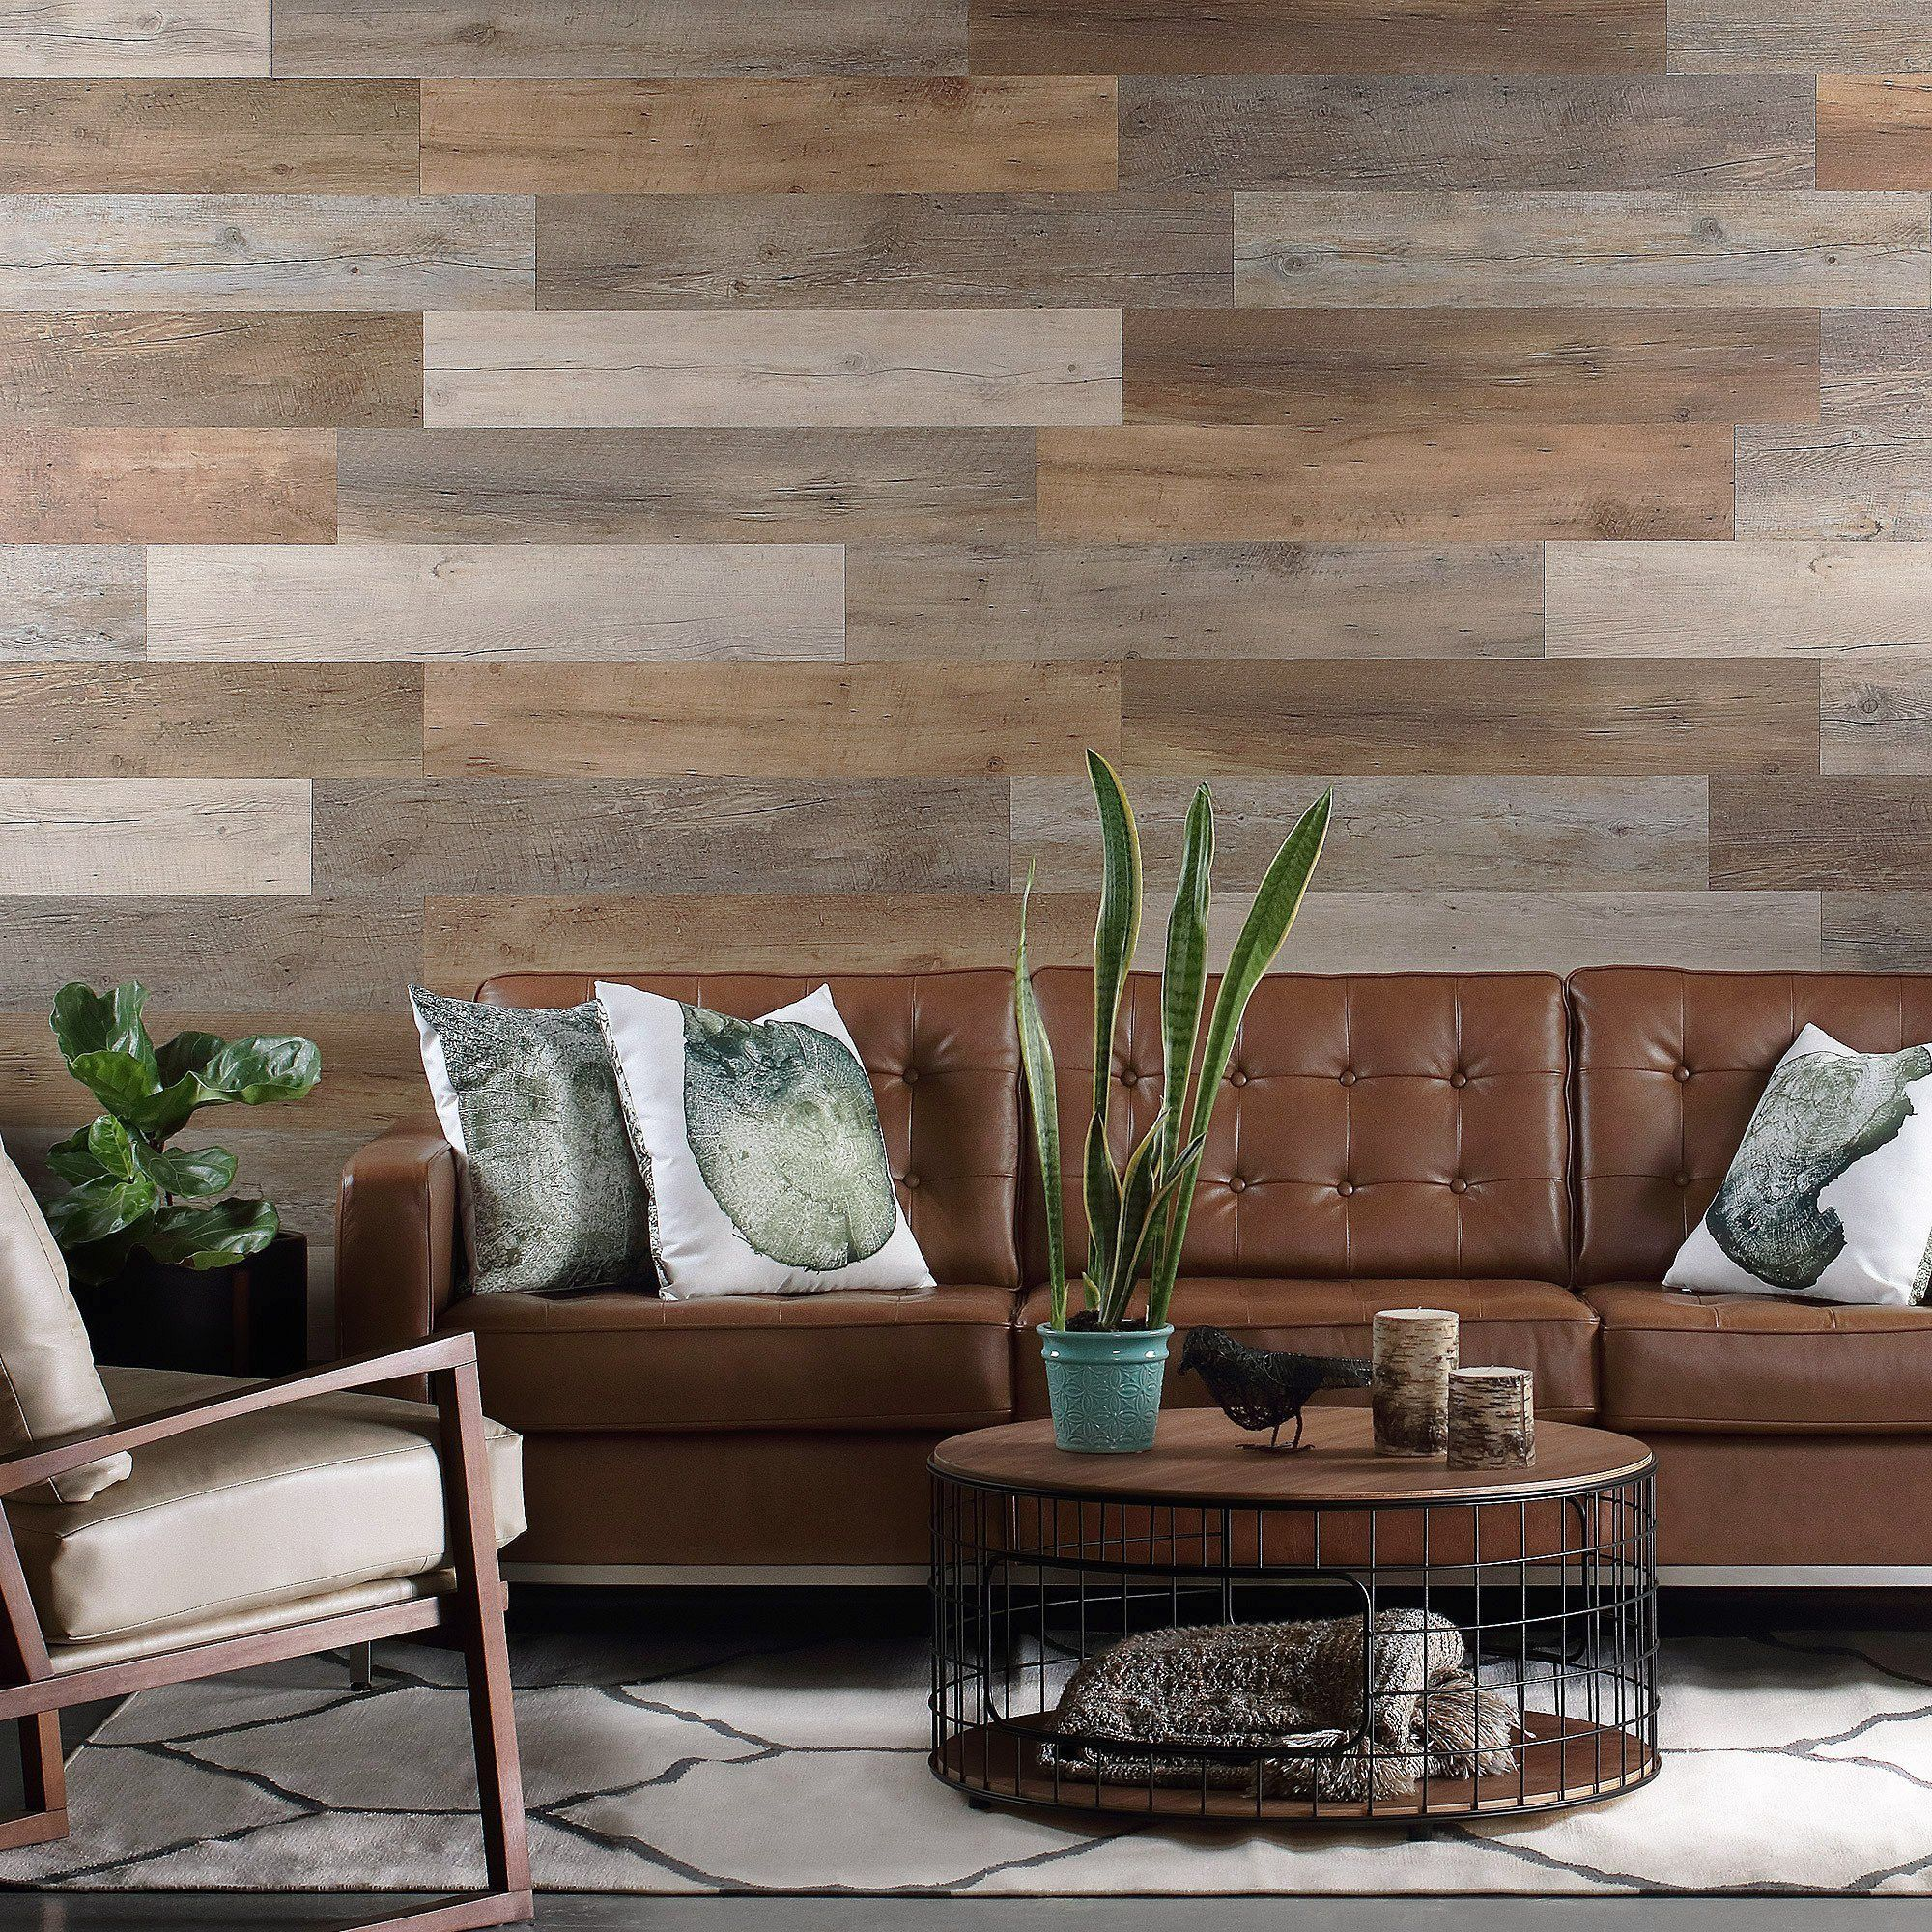 Salvaged Pallet Wood Peel And Stick Wall Planks Wood Wall Design